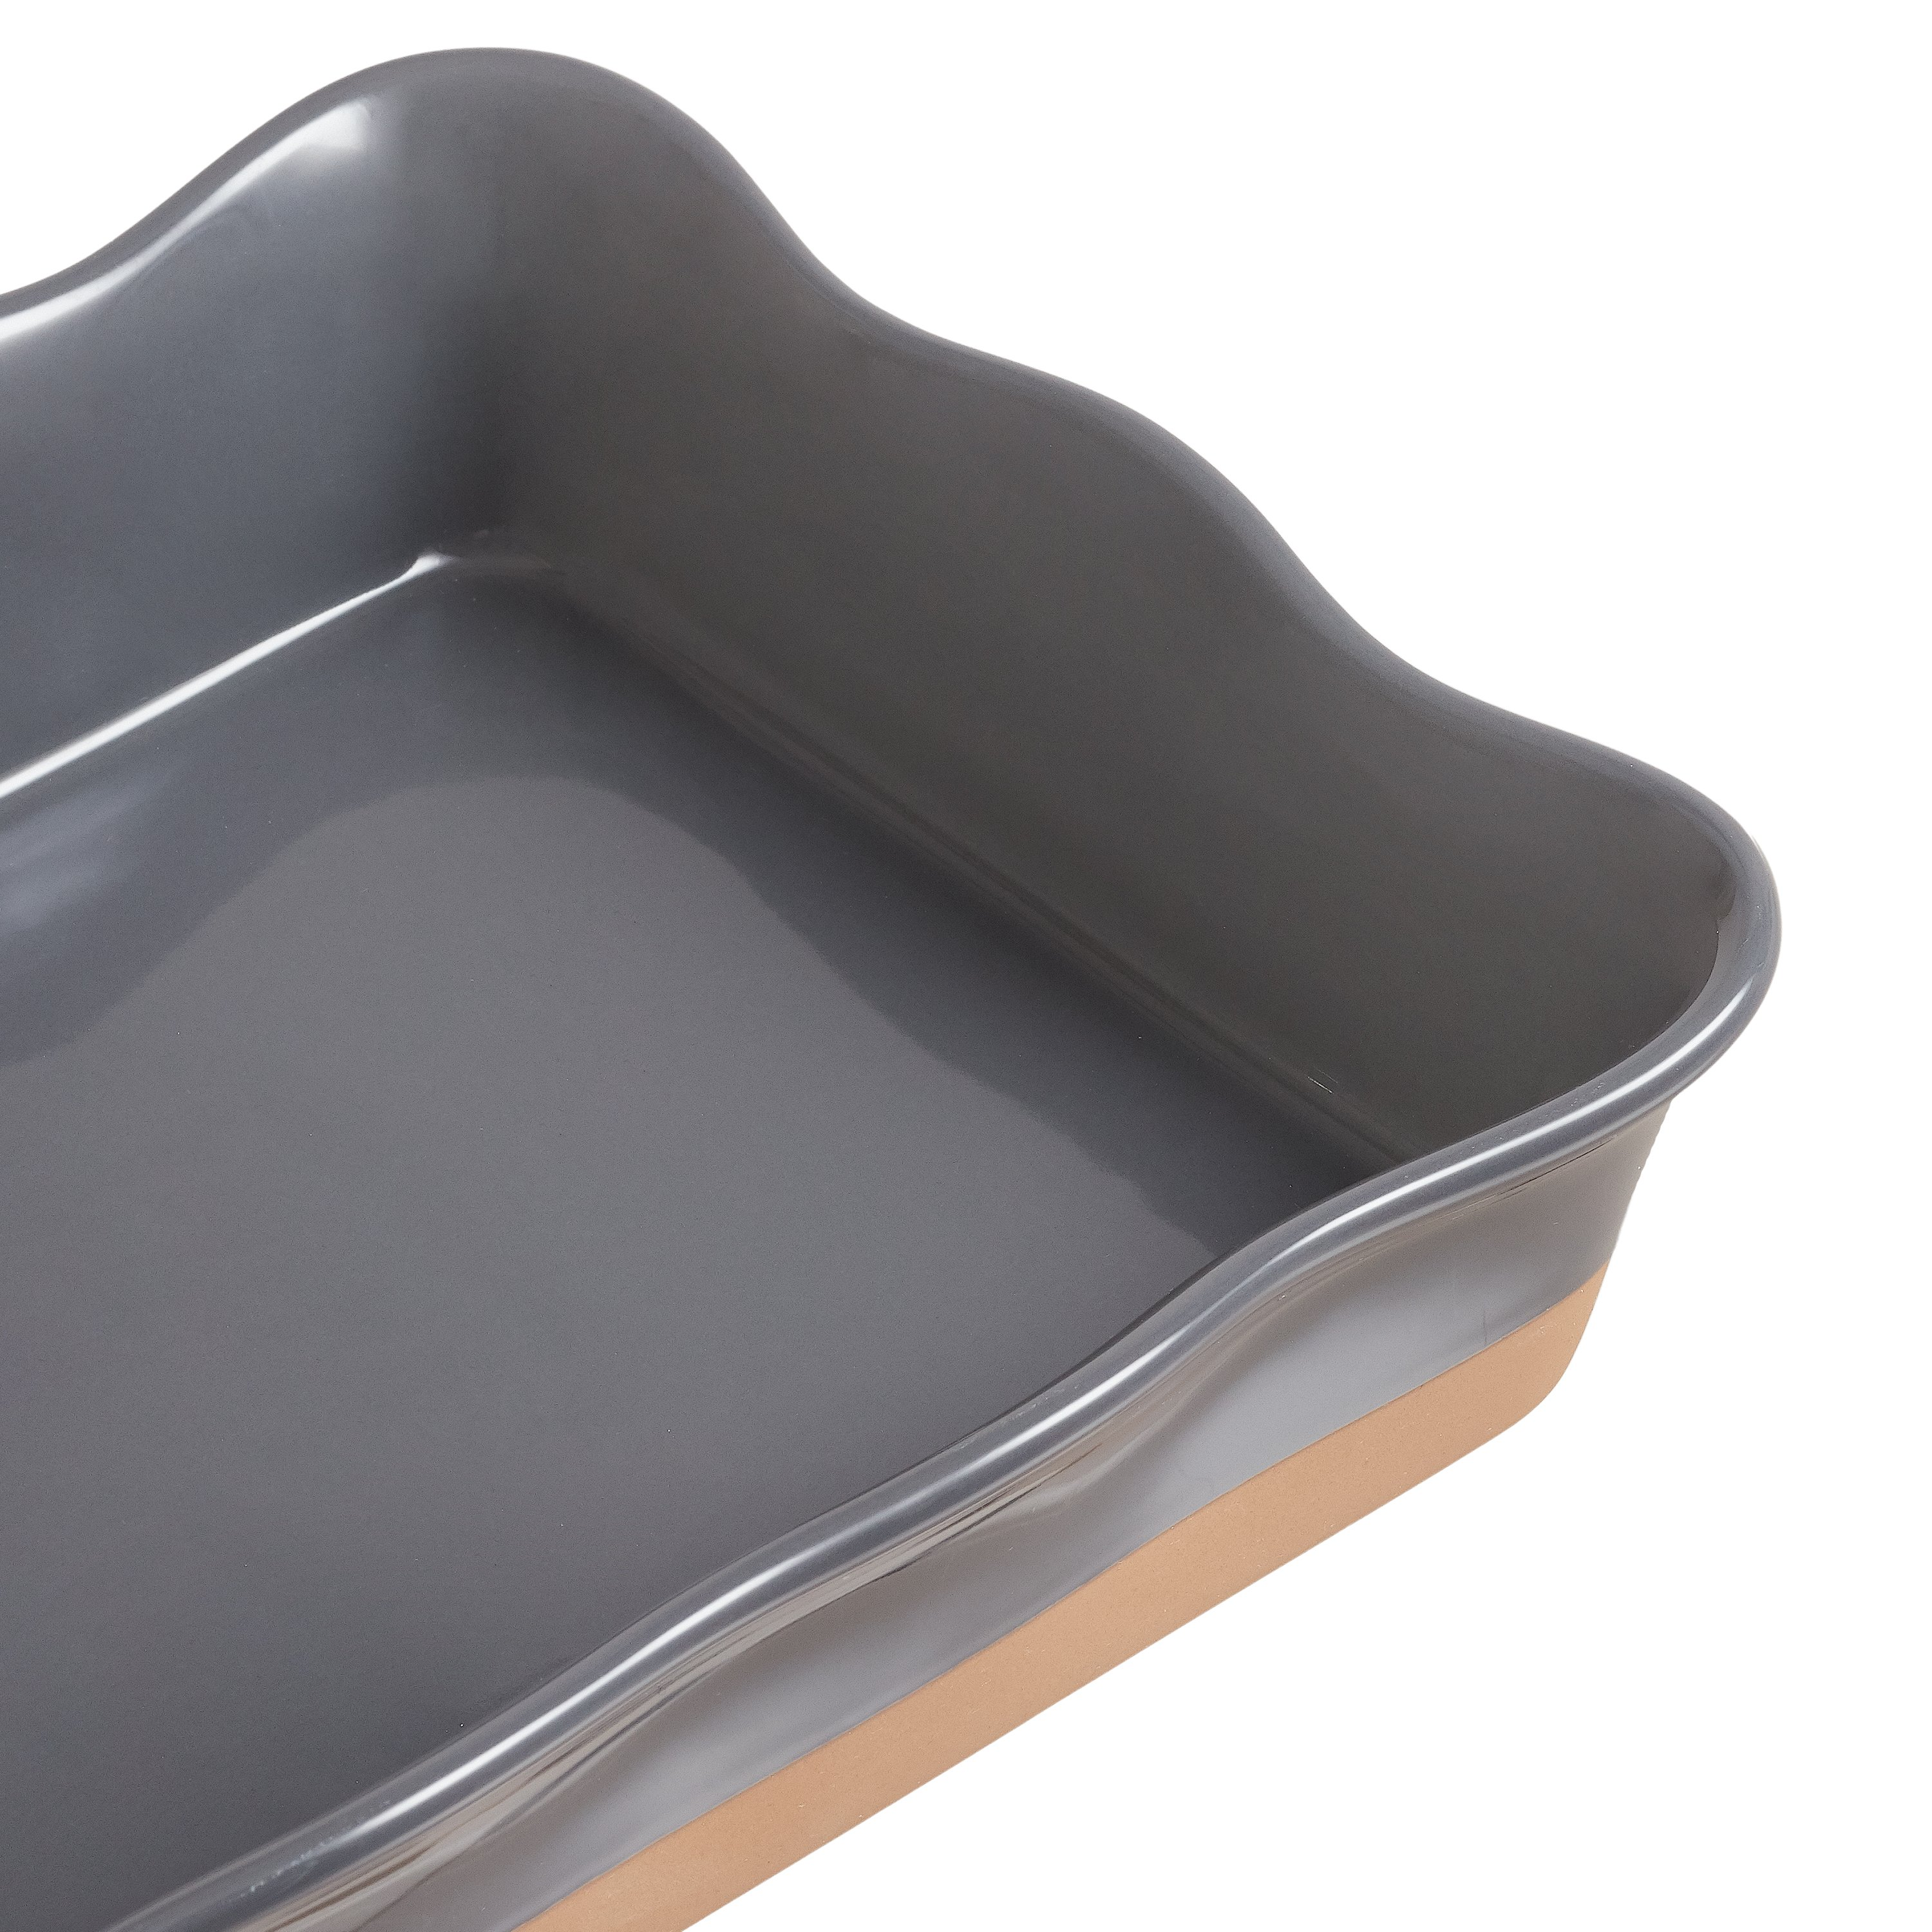 & Gardens Ellie Rectangular Casserole Baking Dish, Set of 3, Multiple Colors-Bakeware Sets 3.24